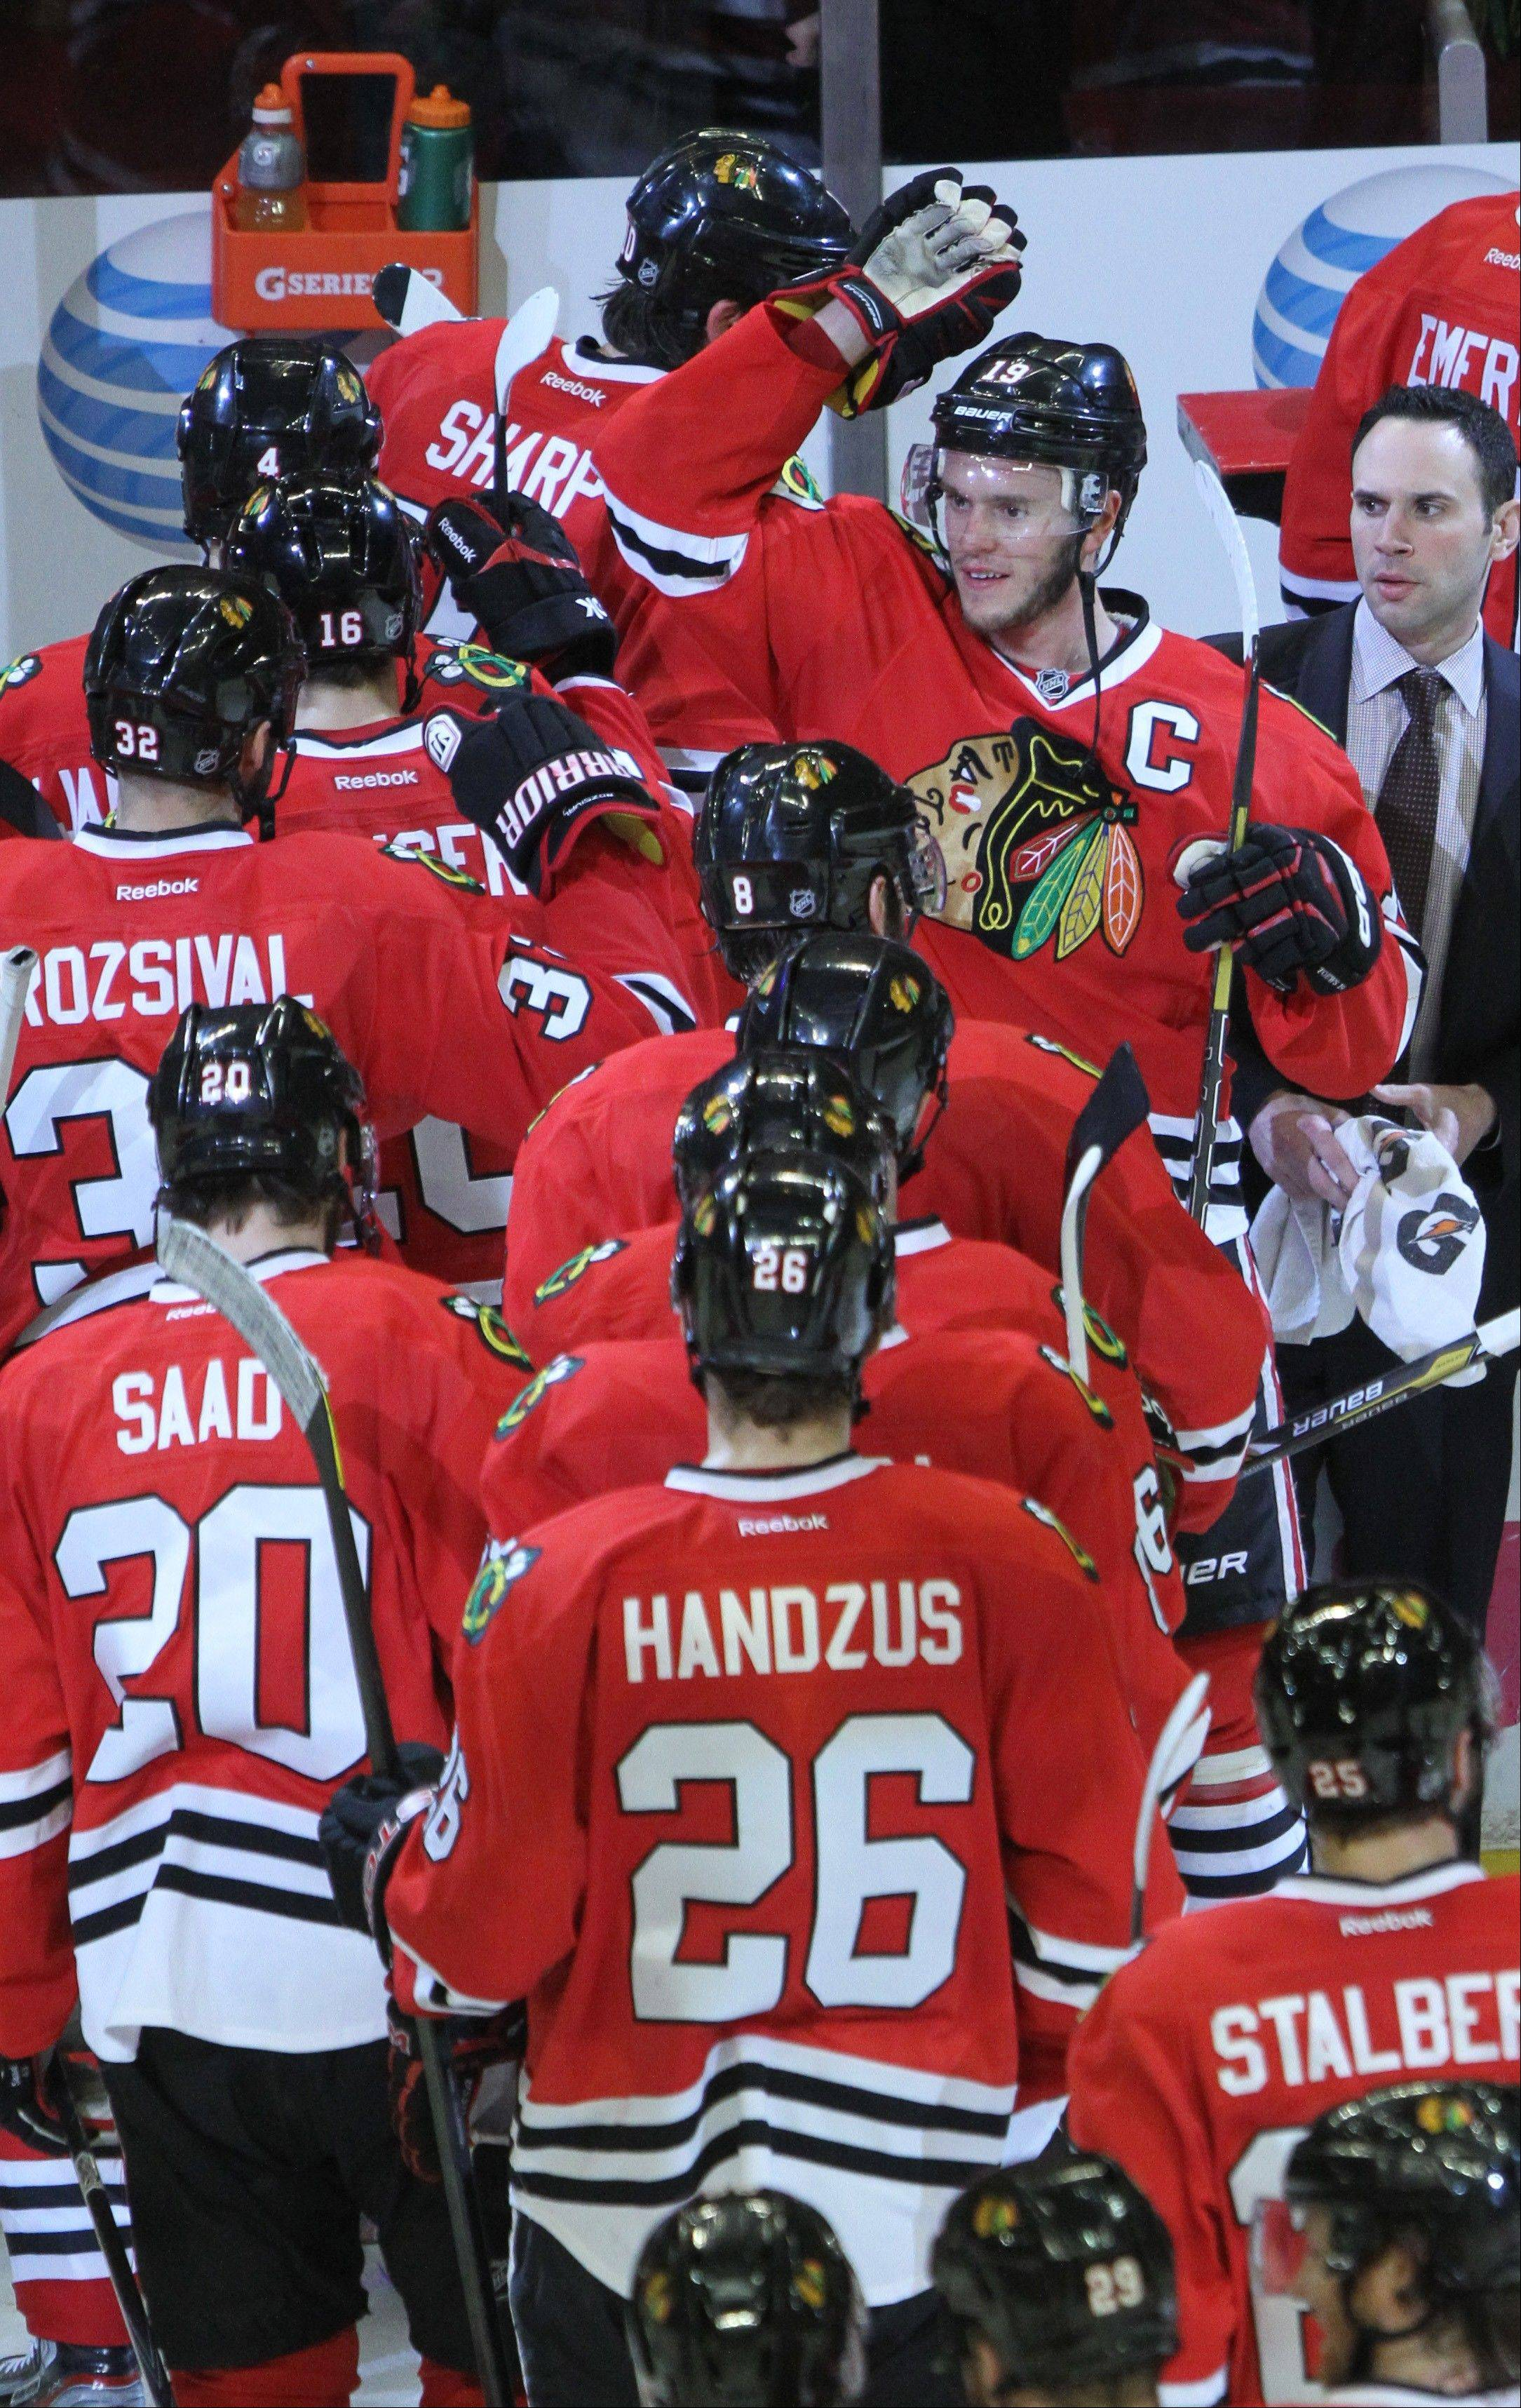 Blackhawks captain Jonathan Toews, top right, high-fives his teammates after their overtime win in Game 7 on Wednesday at the United Center.